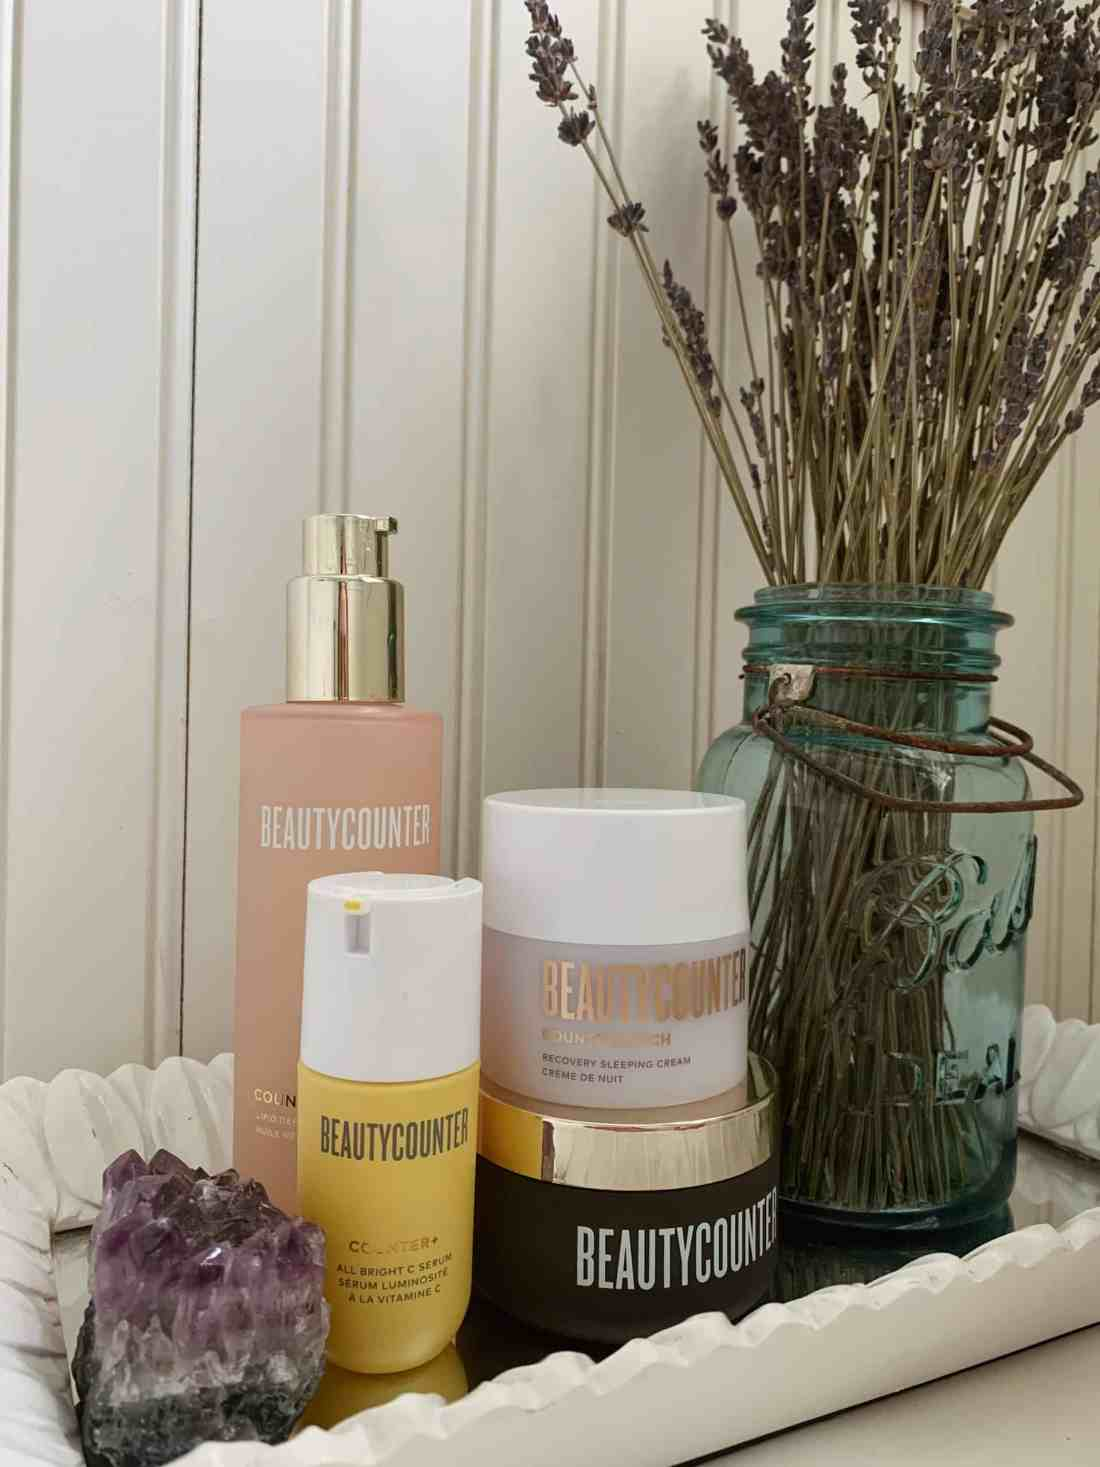 A variety of Beautycounter products on display.